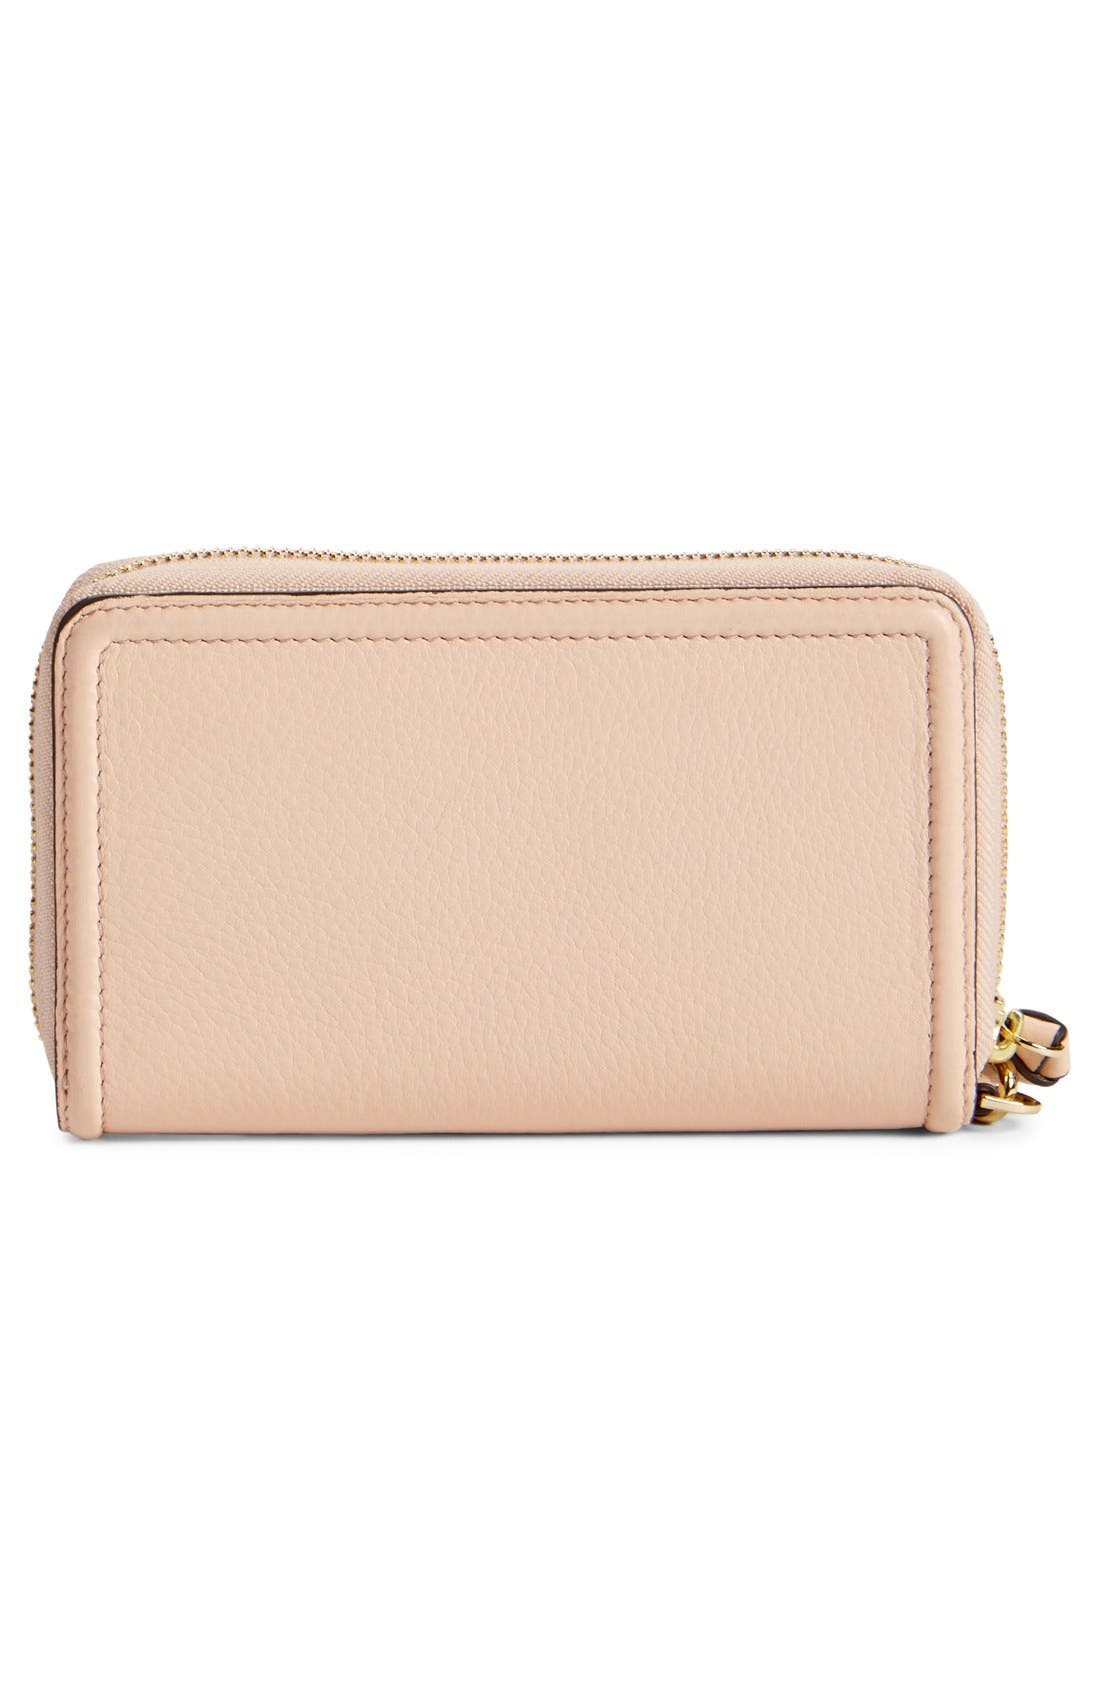 Alternate Image 3  - Tory Burch 'Thea' Leather Wristlet